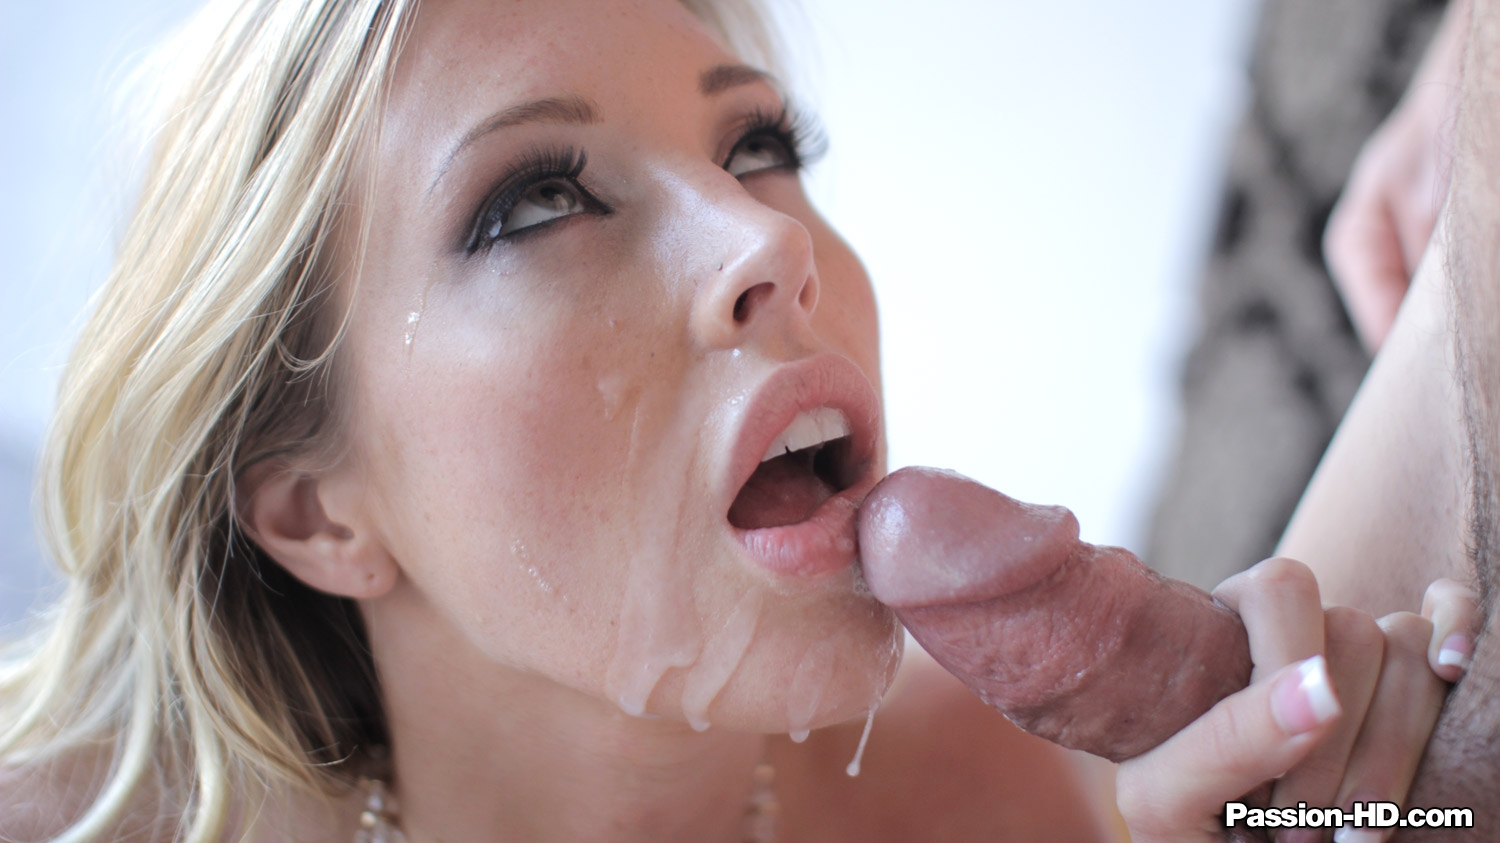 Best hd blowjob